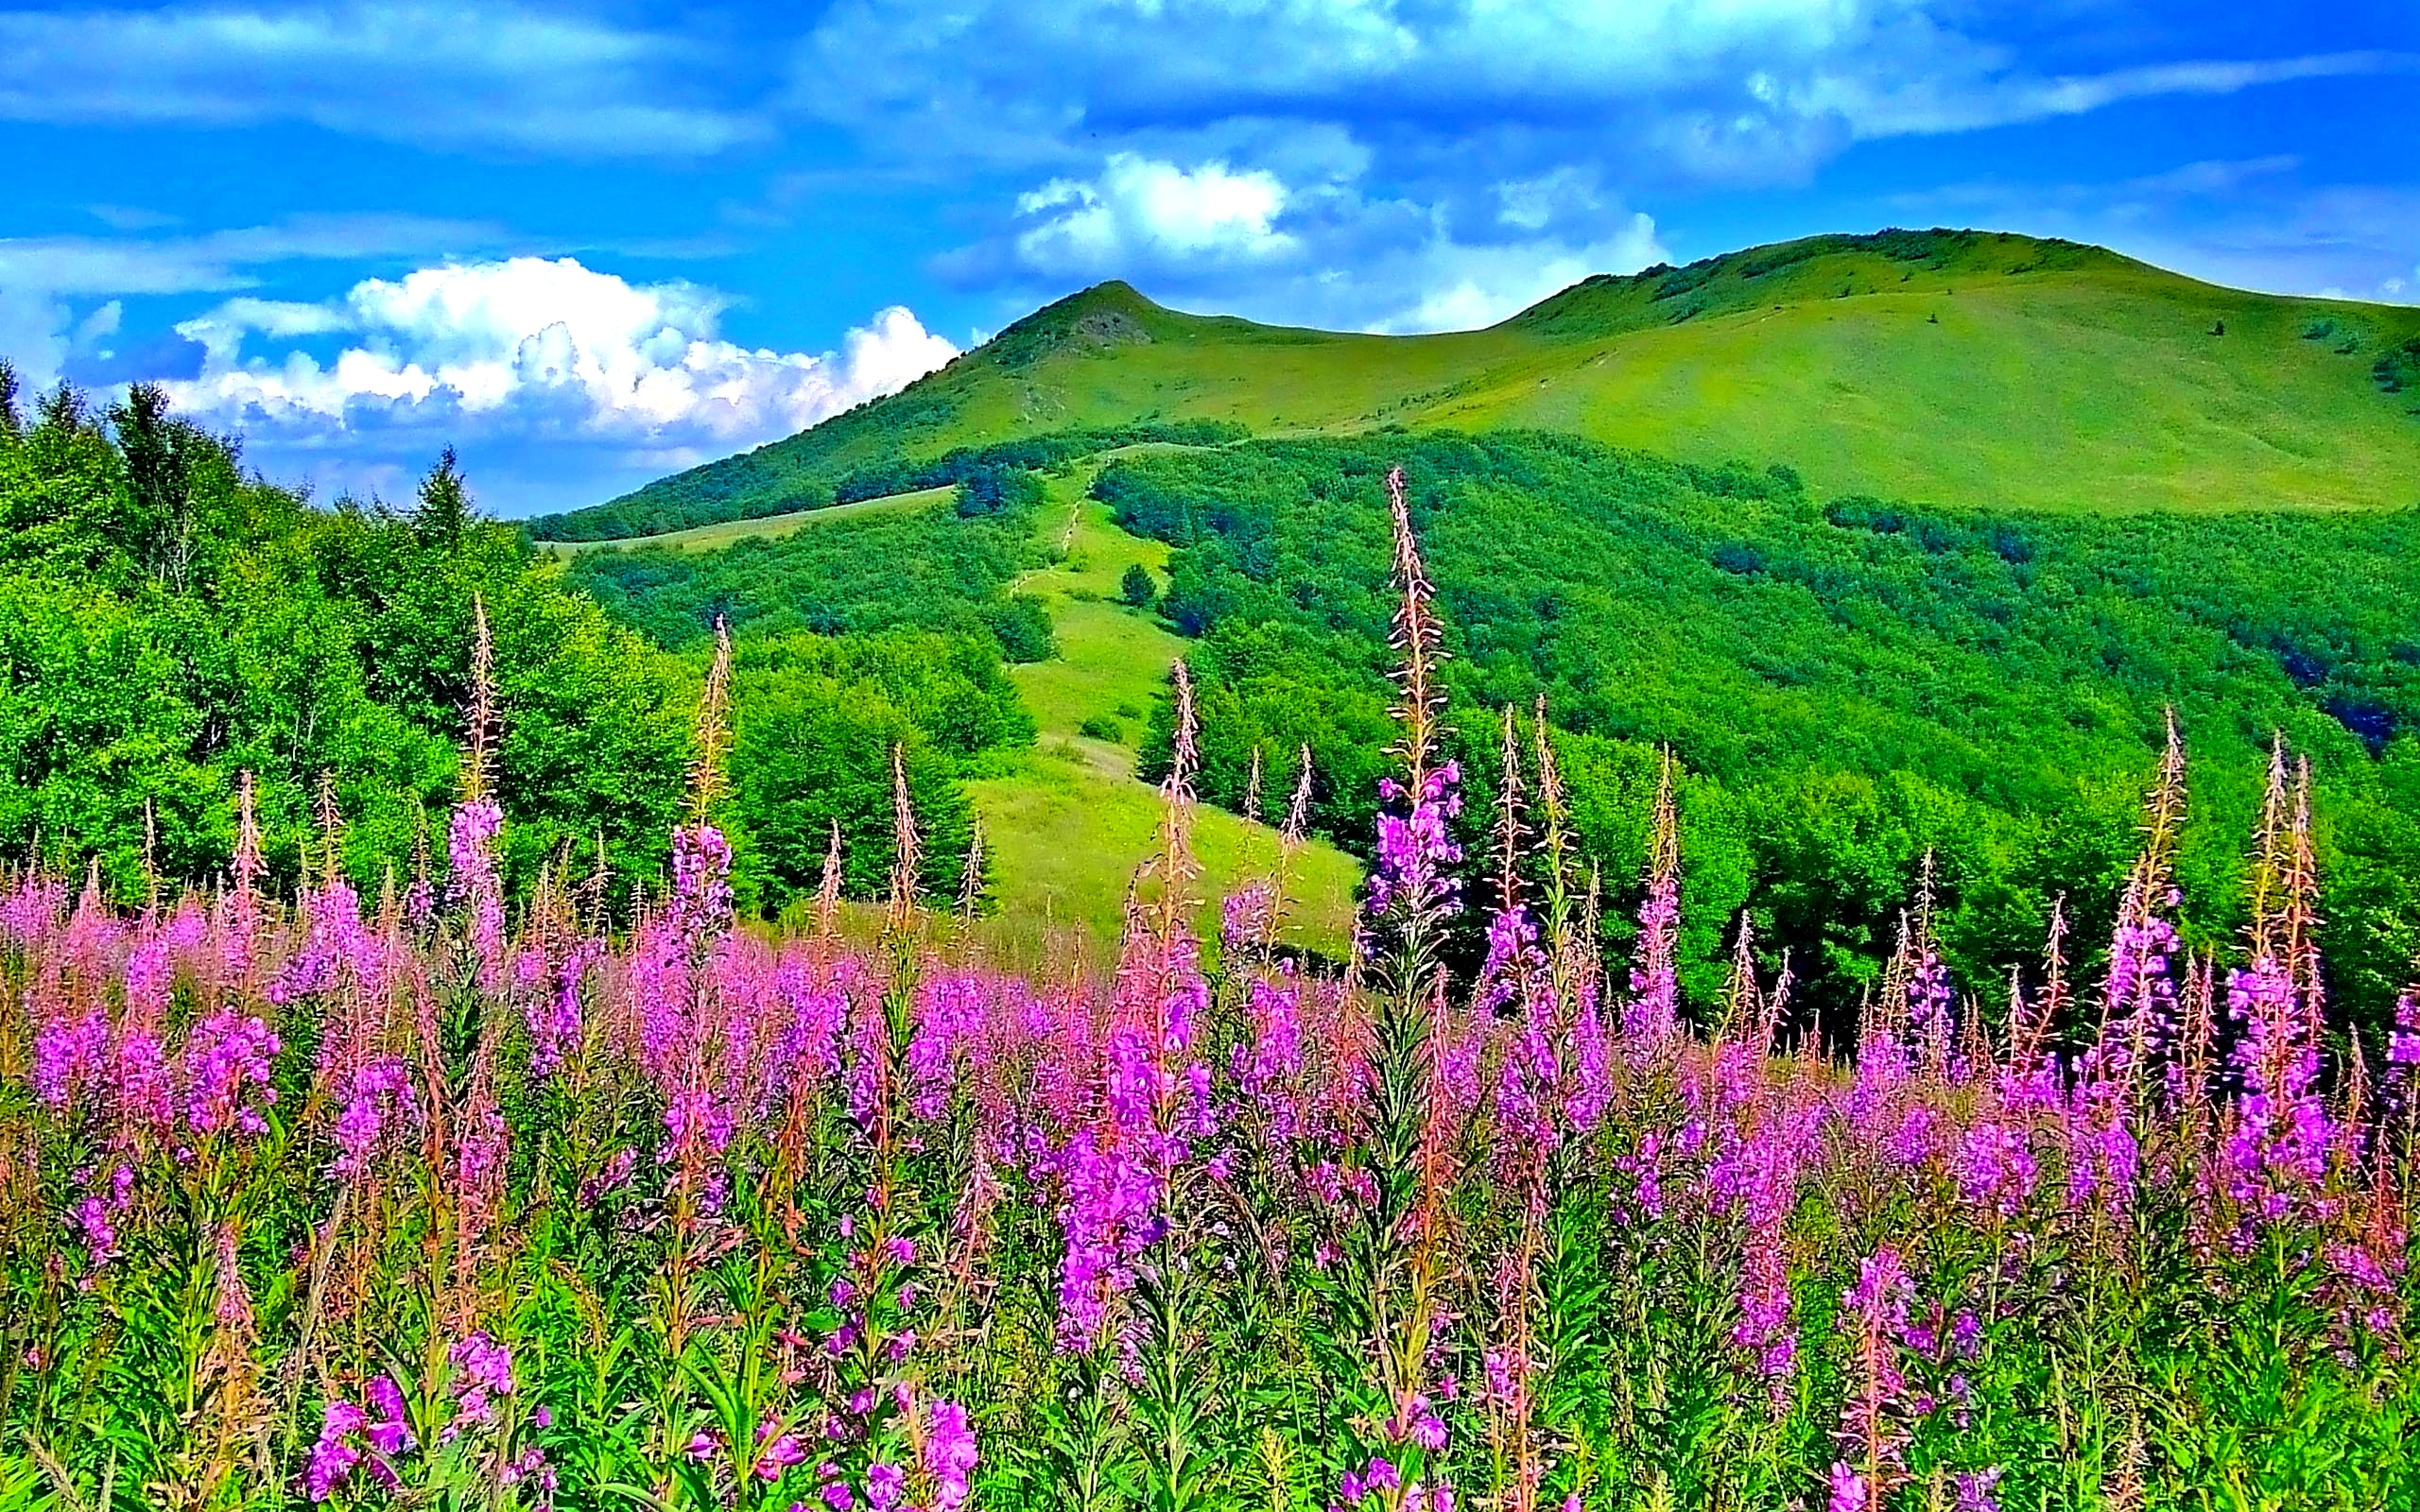 beautiful picturesque scenery with wonderful pink flowers